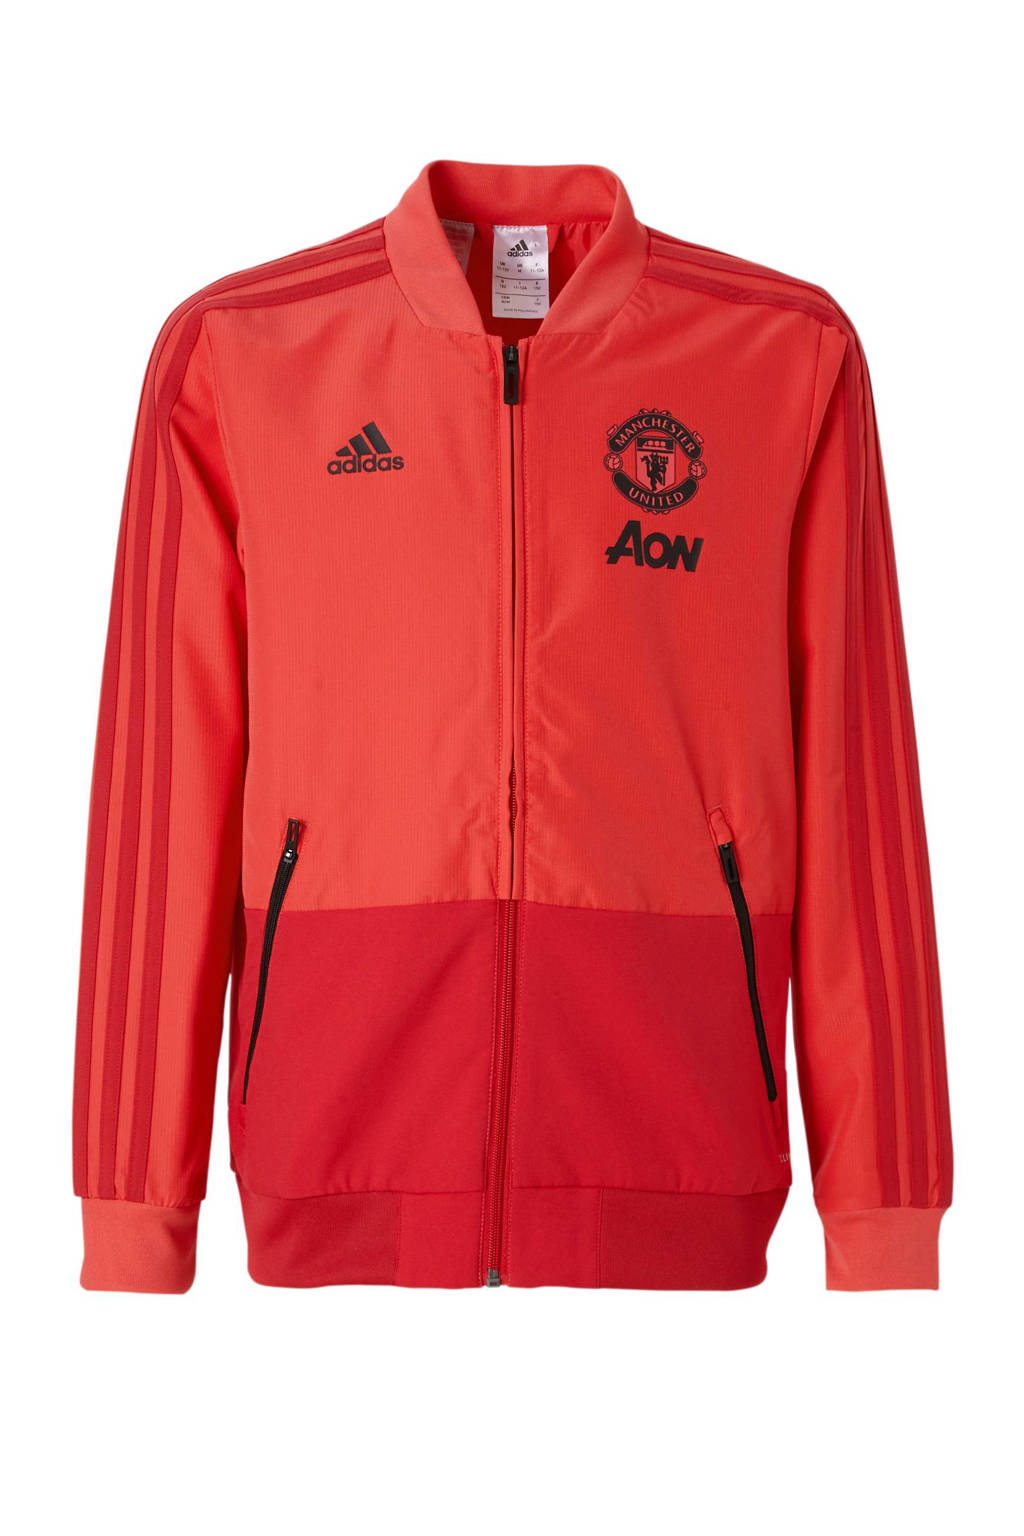 adidas performance Junior Manchester United voetbaljack, Rood/zwart